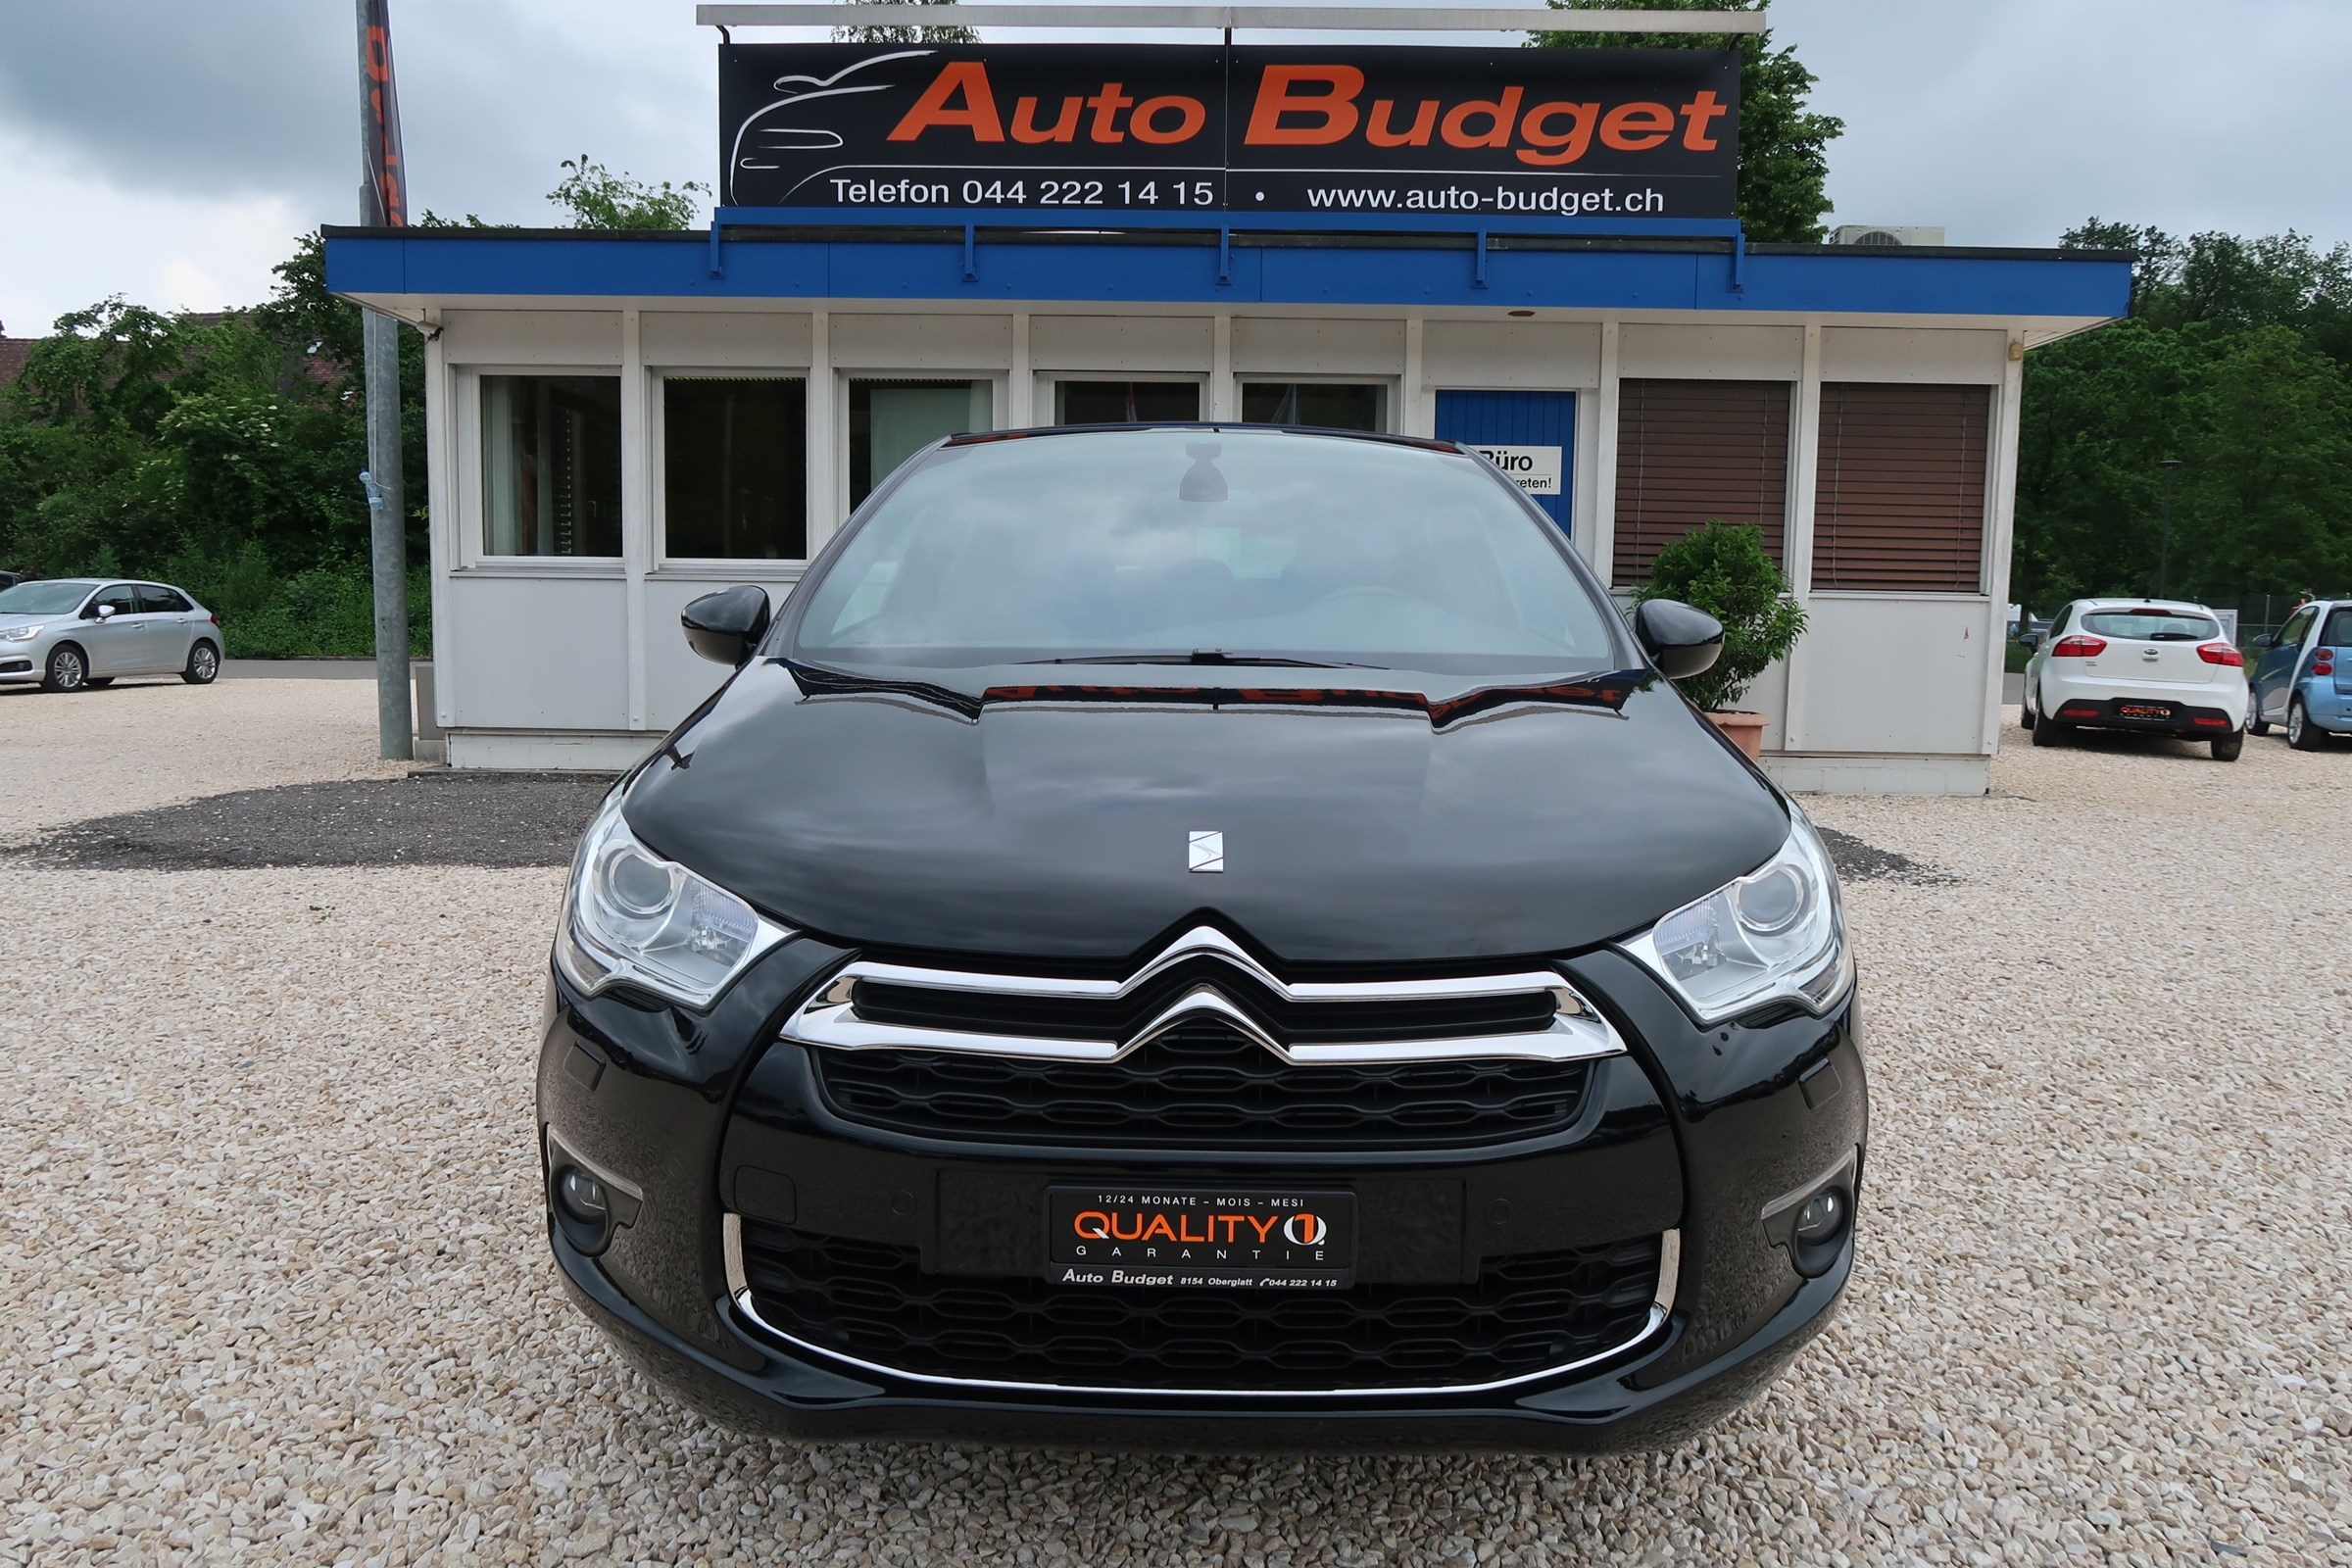 saloon DS Automobiles DS4 1.6 THP Sport Chic Automatic